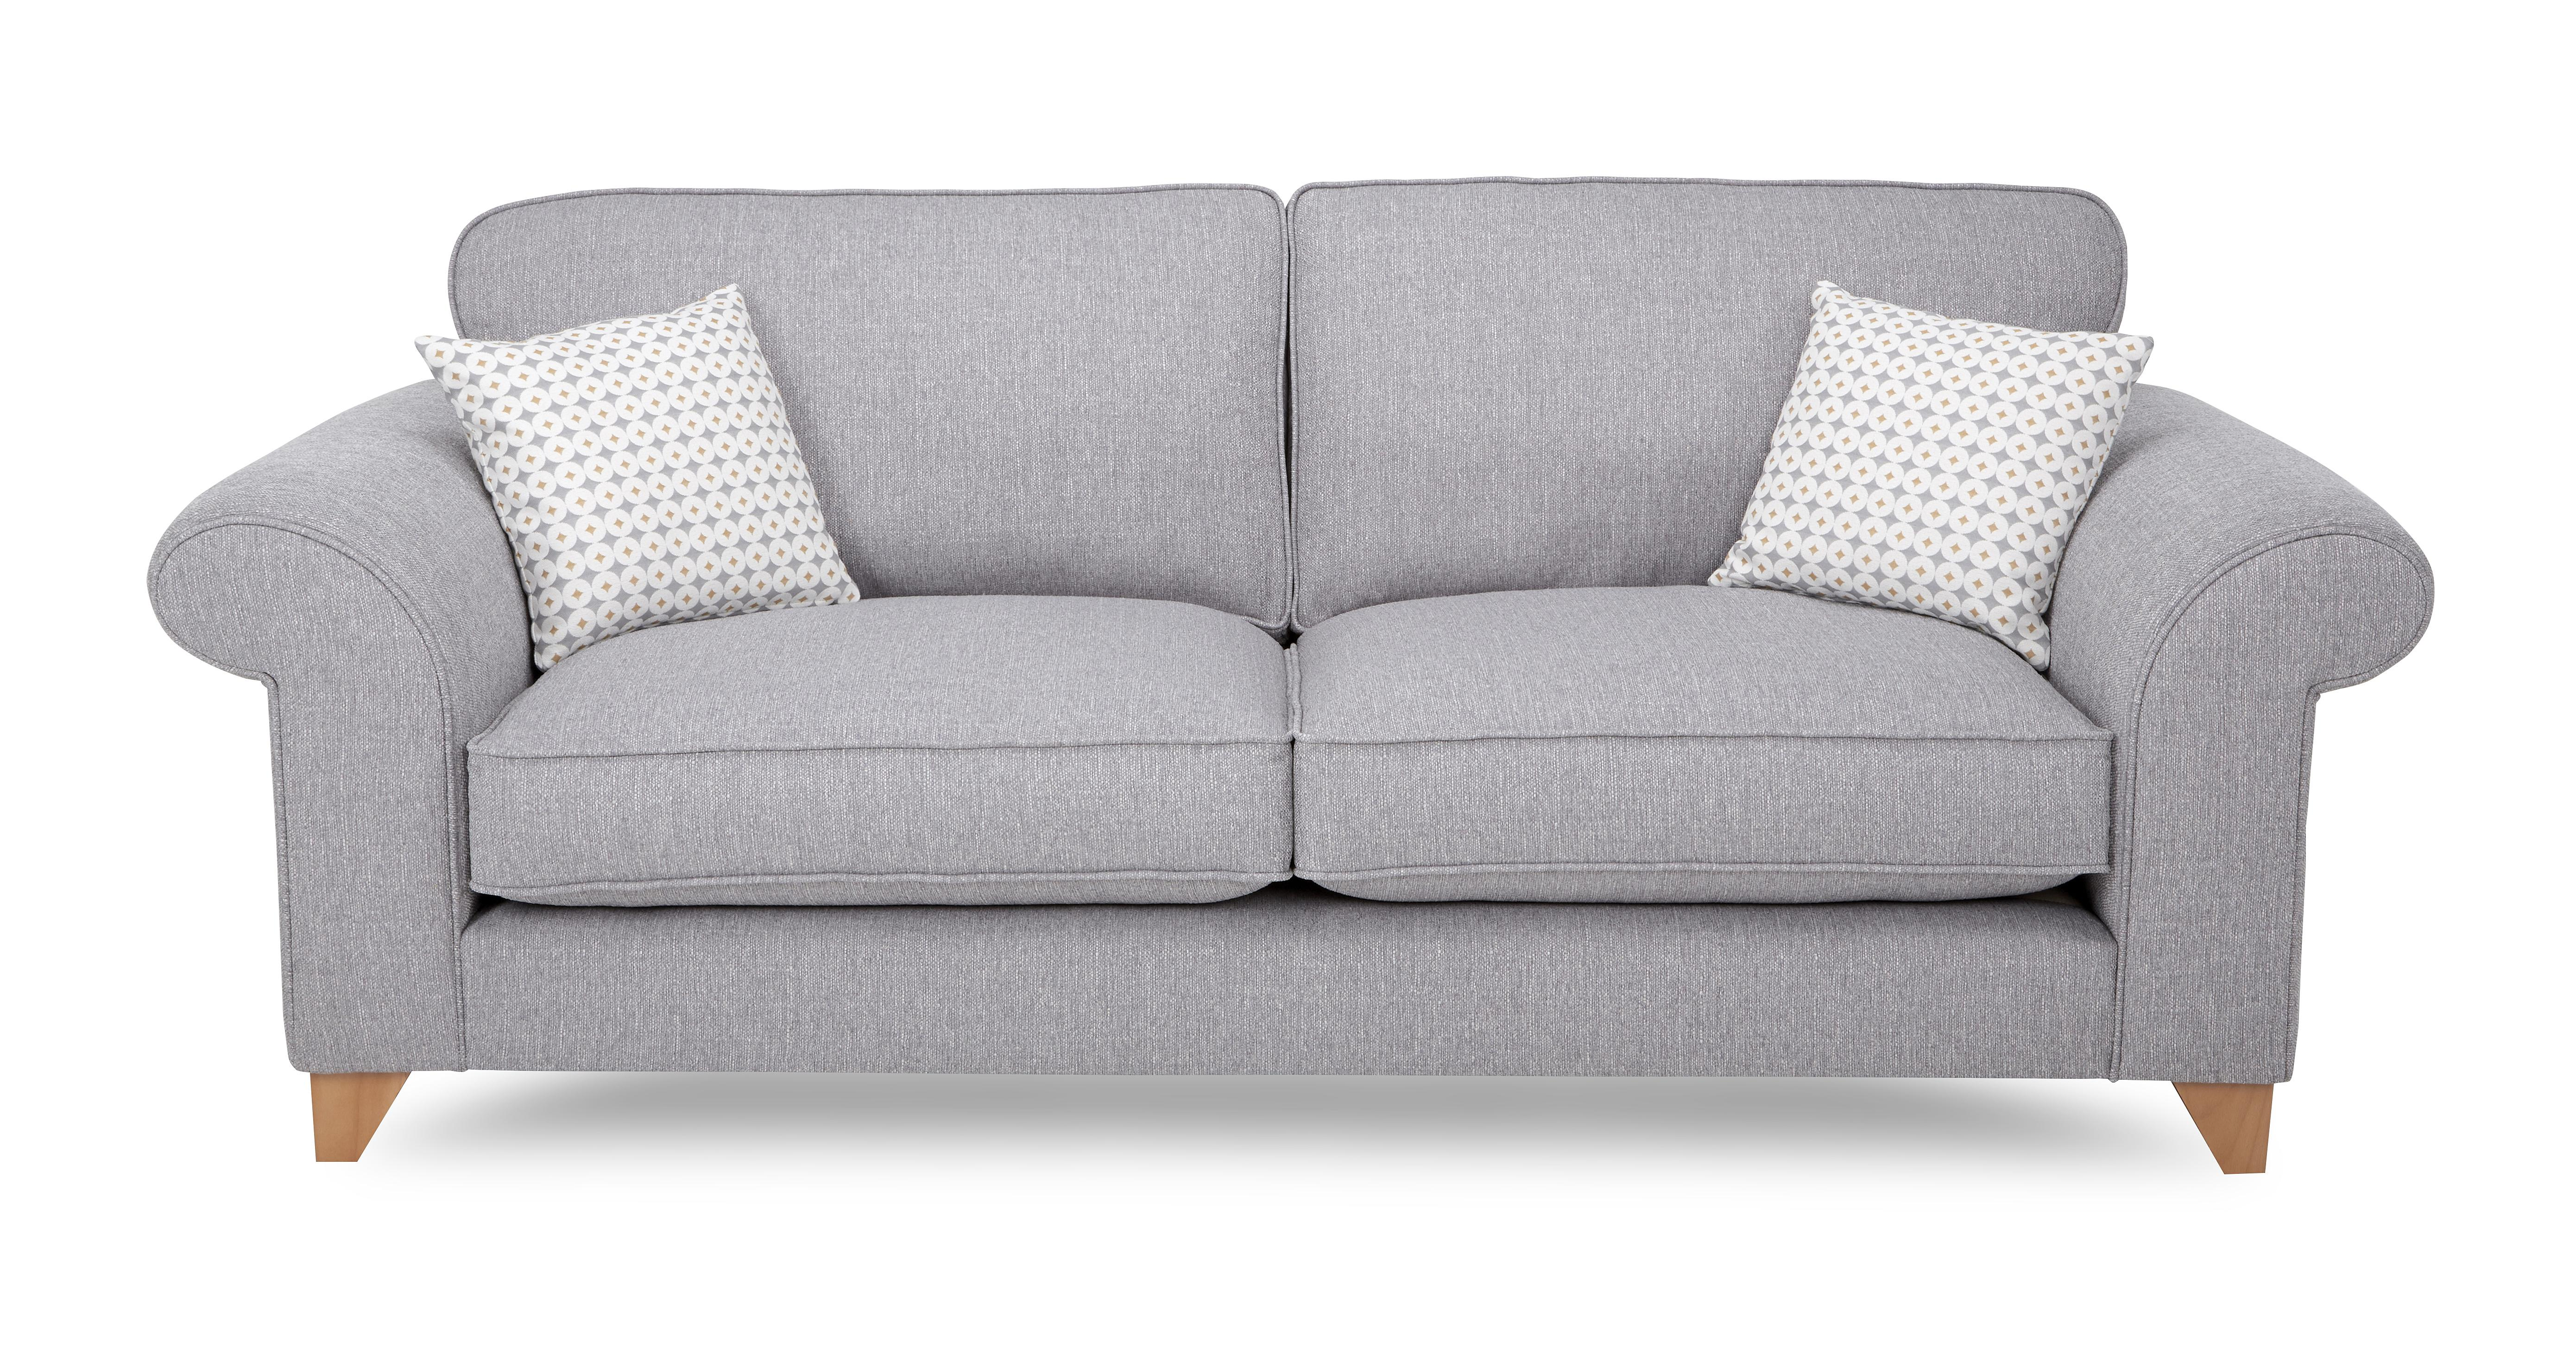 Sofa Uk Finance Angelic 2 Seater Sofa